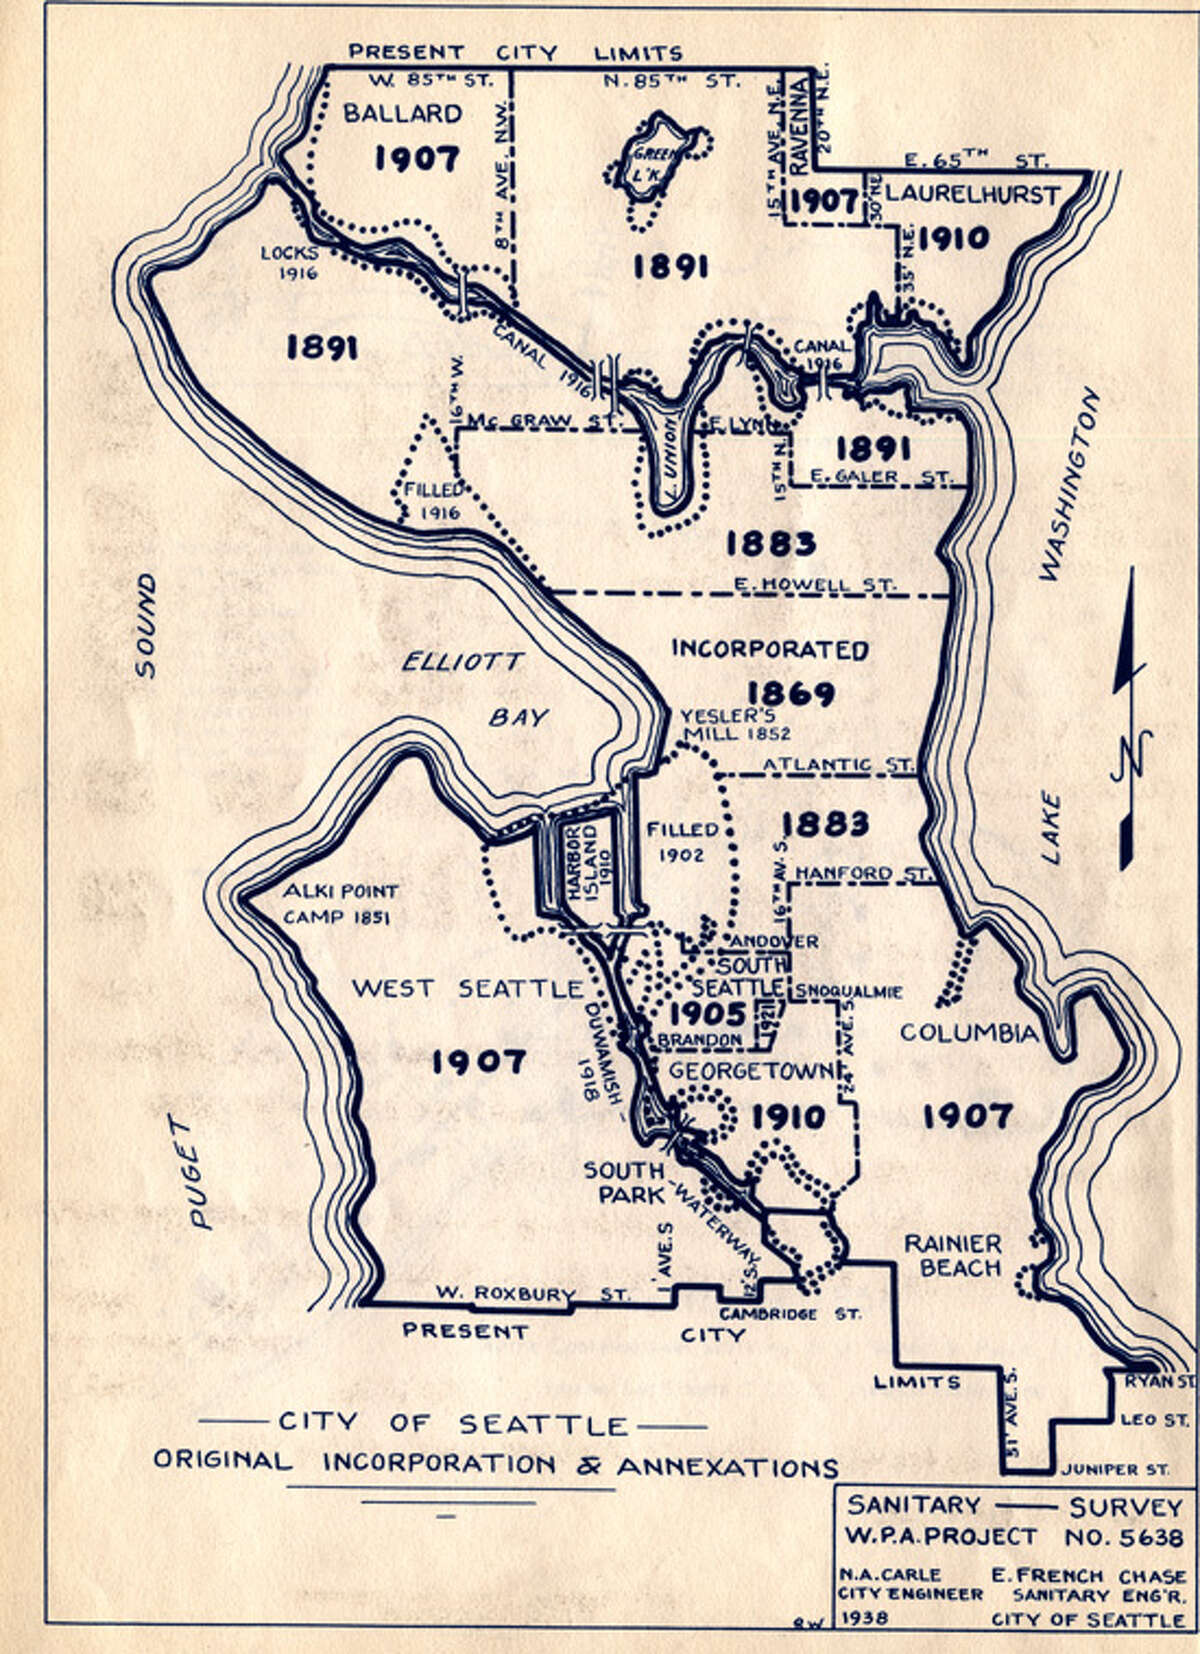 What were Seattle's earliest neighborhoods? It doesn't take a major sleuth to figure out some of it, but we consulted this 1938 Works Progress Administration map showing Seattle's annexations to date at that time to come up with a list of some accuracy. The exact beginnings of some neighborhoods are hard to nail down, and the whole area was already inhabited by Native Americans long before even the earliest explorers sailed Puget Sound. We'll focus here on the parts of the city where the incoming white people opted to live and develop cities and neighborhoods. One note on this map, readers will notice that the northern boundary of the city was North 85th Street at that time, while it now extends to North 145th Street.